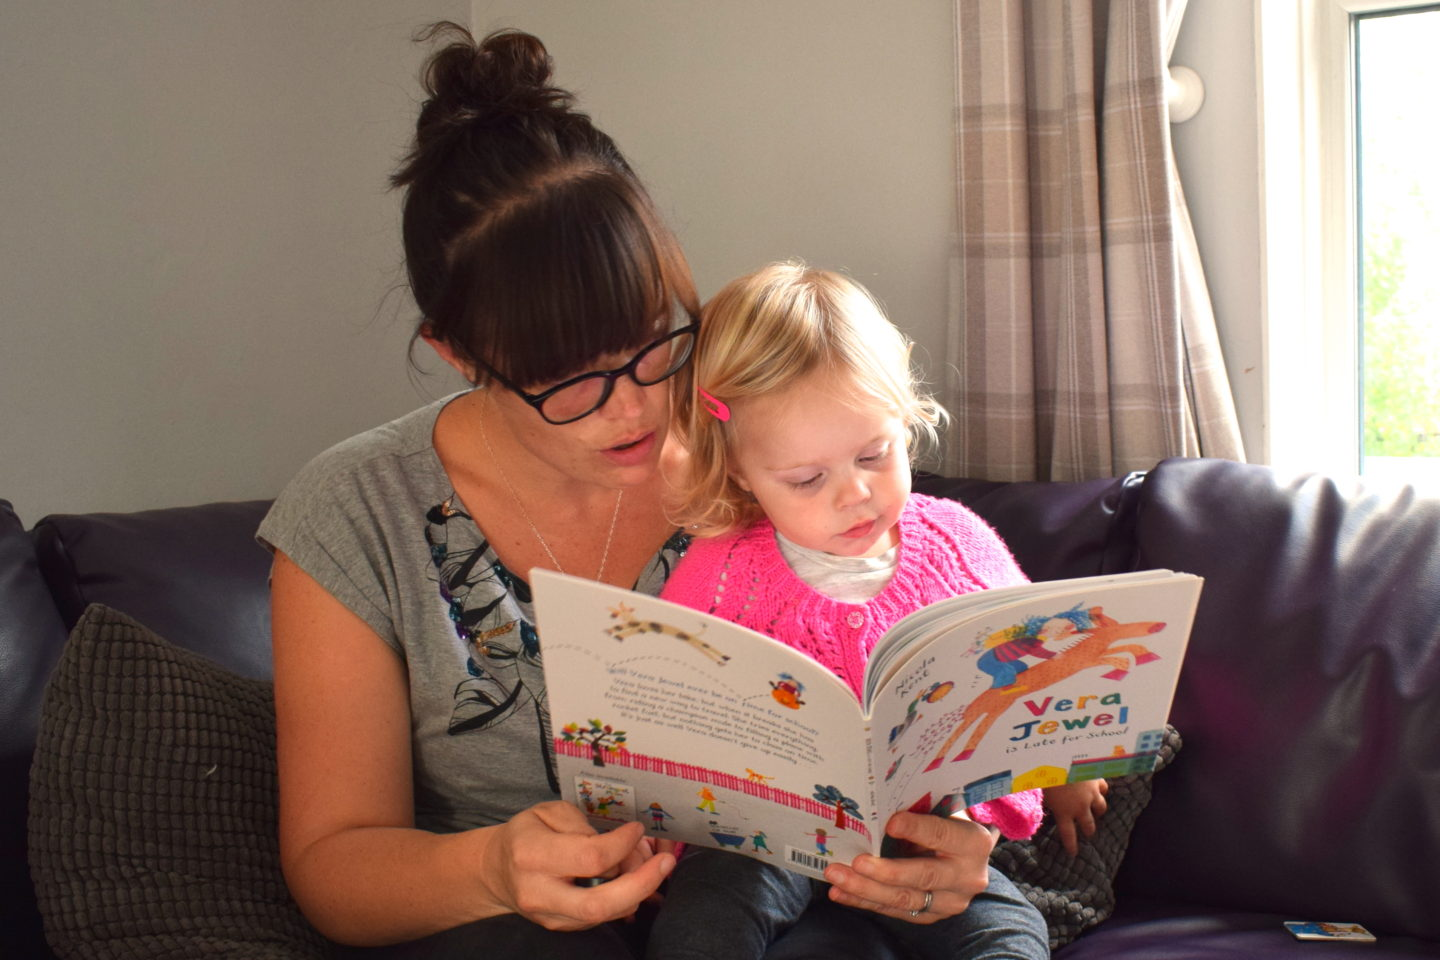 mother making time to read with one year old on her lap